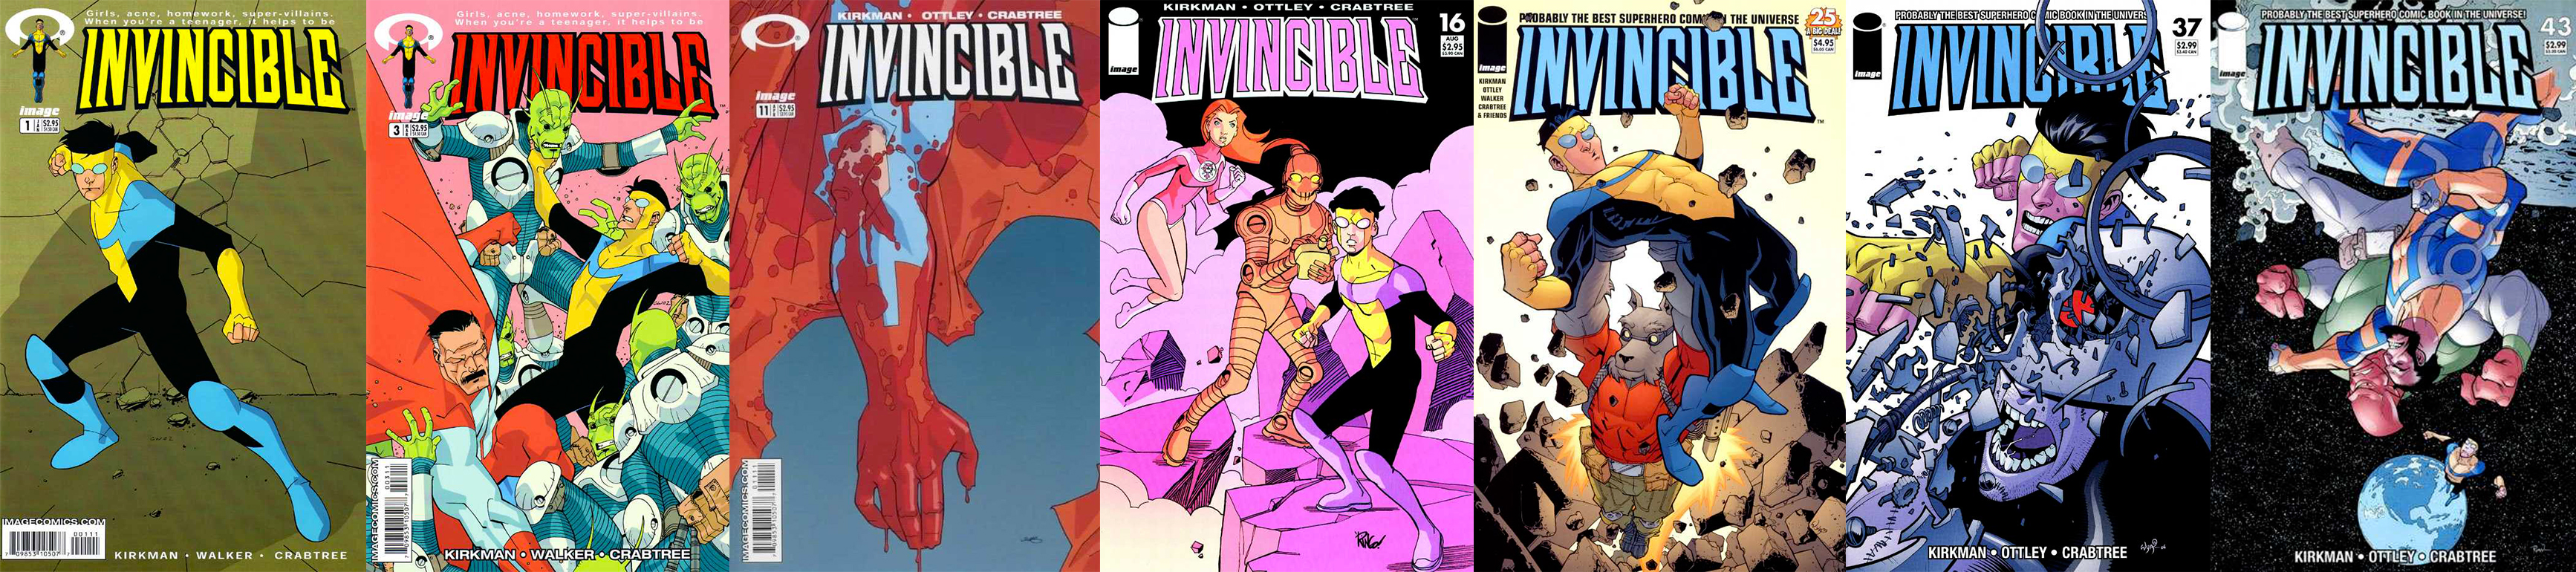 invincible-banner-001